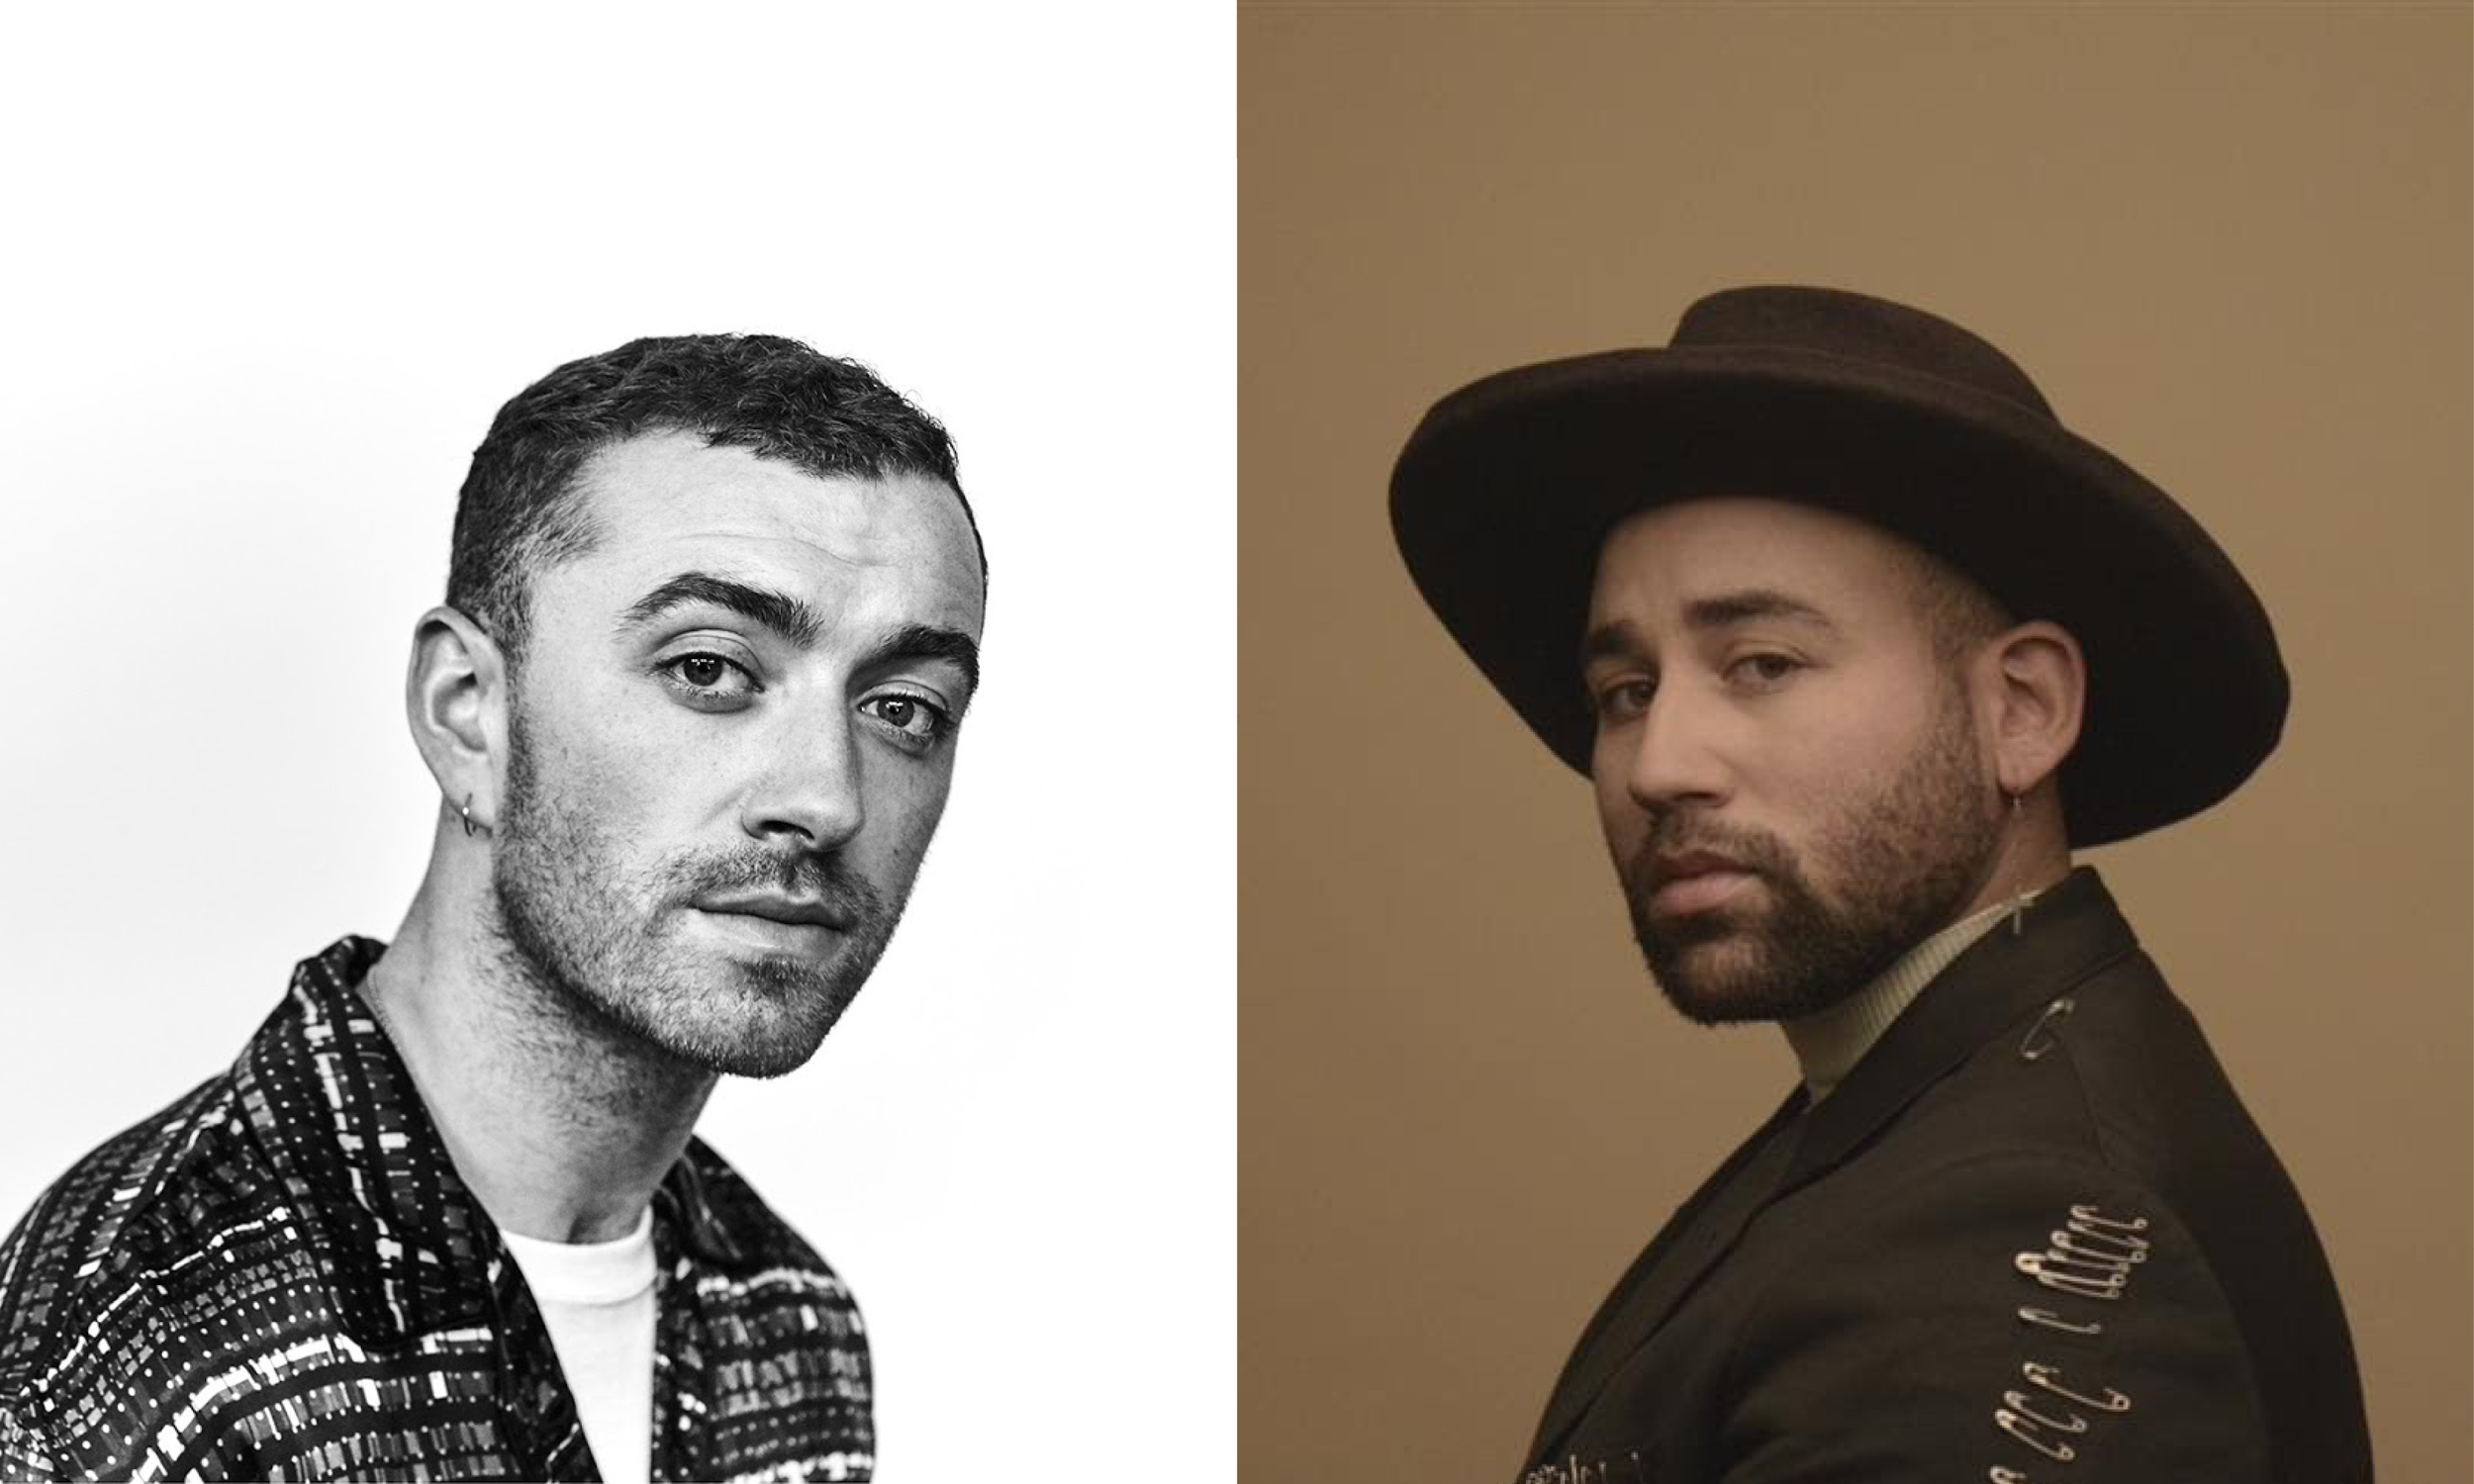 Parson James and Sam Smith represent two other queer artists who utilize religious language in their music. Photos courtesy Capitol Records and RCA Records.